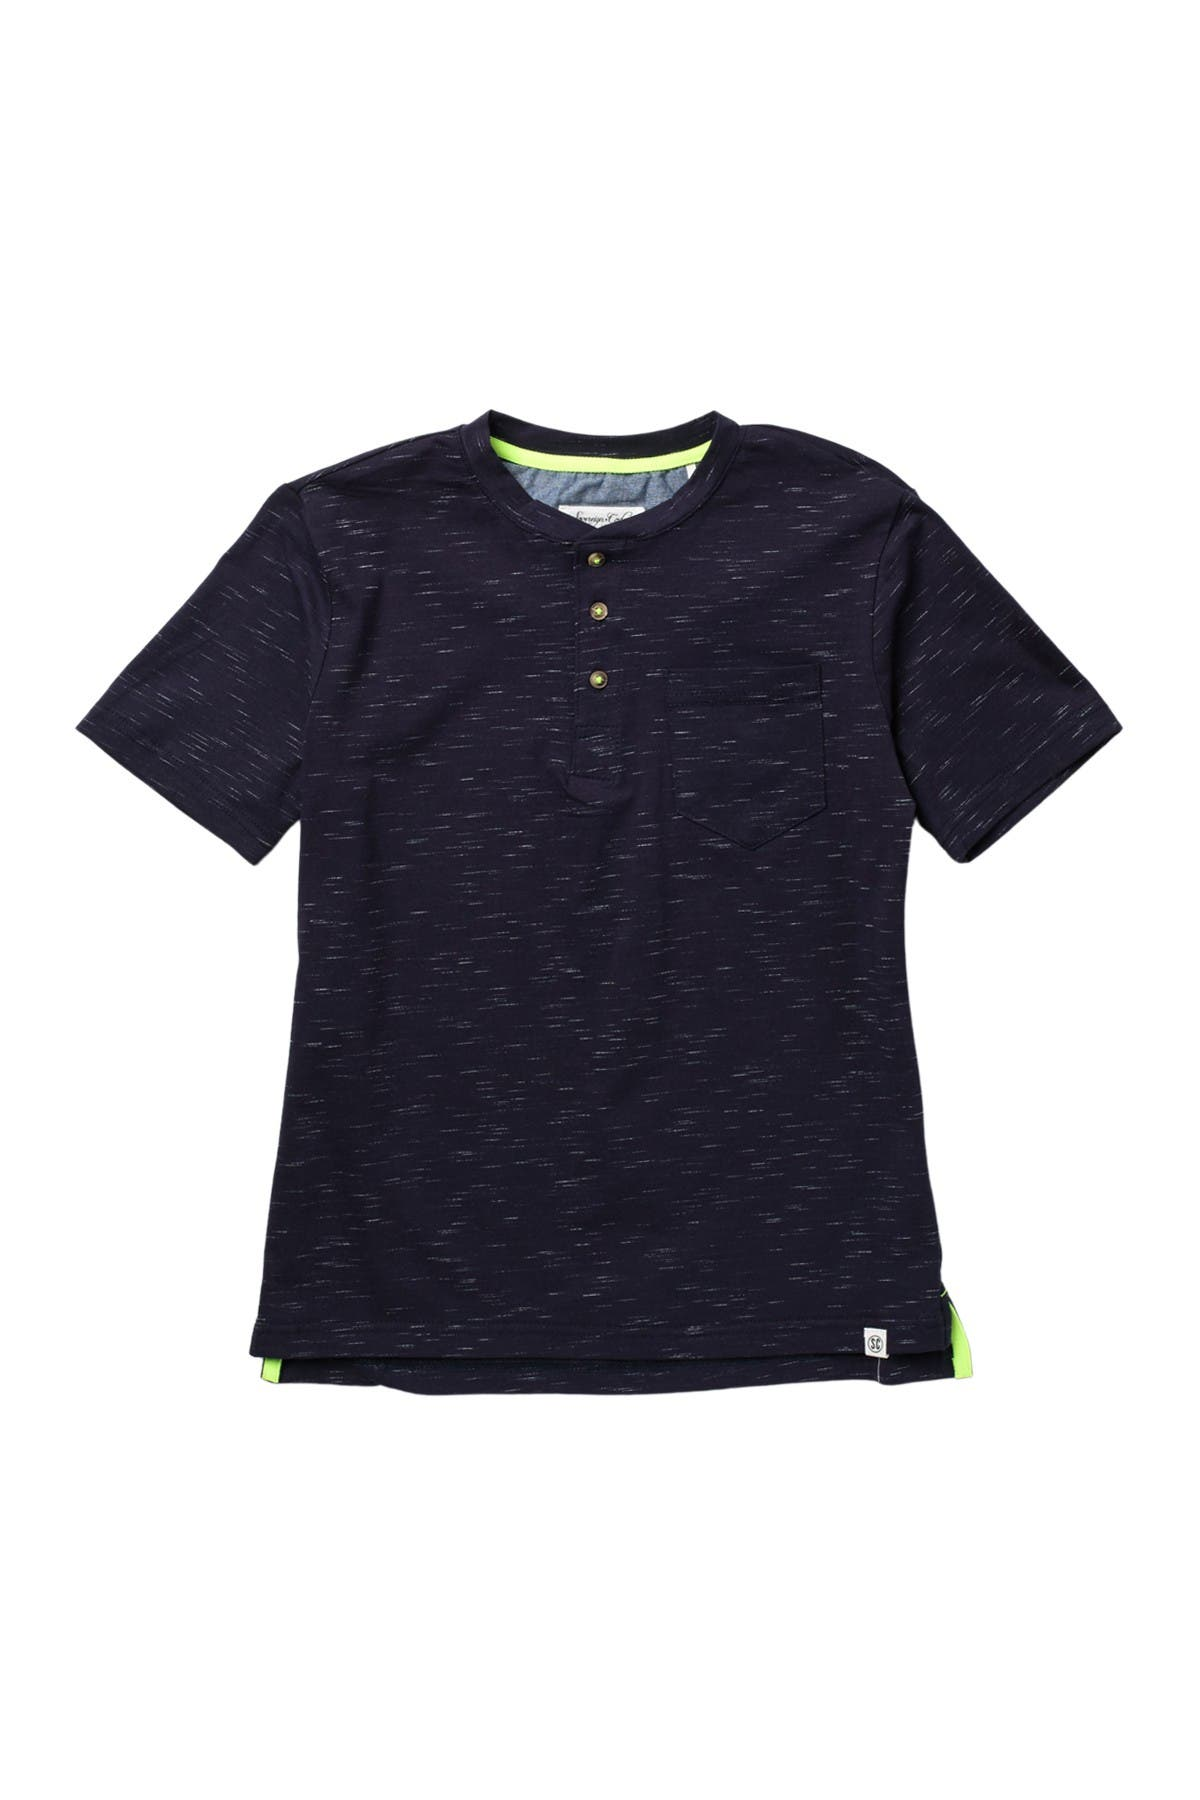 Image of Sovereign Code Unit Speckled Henley Tee